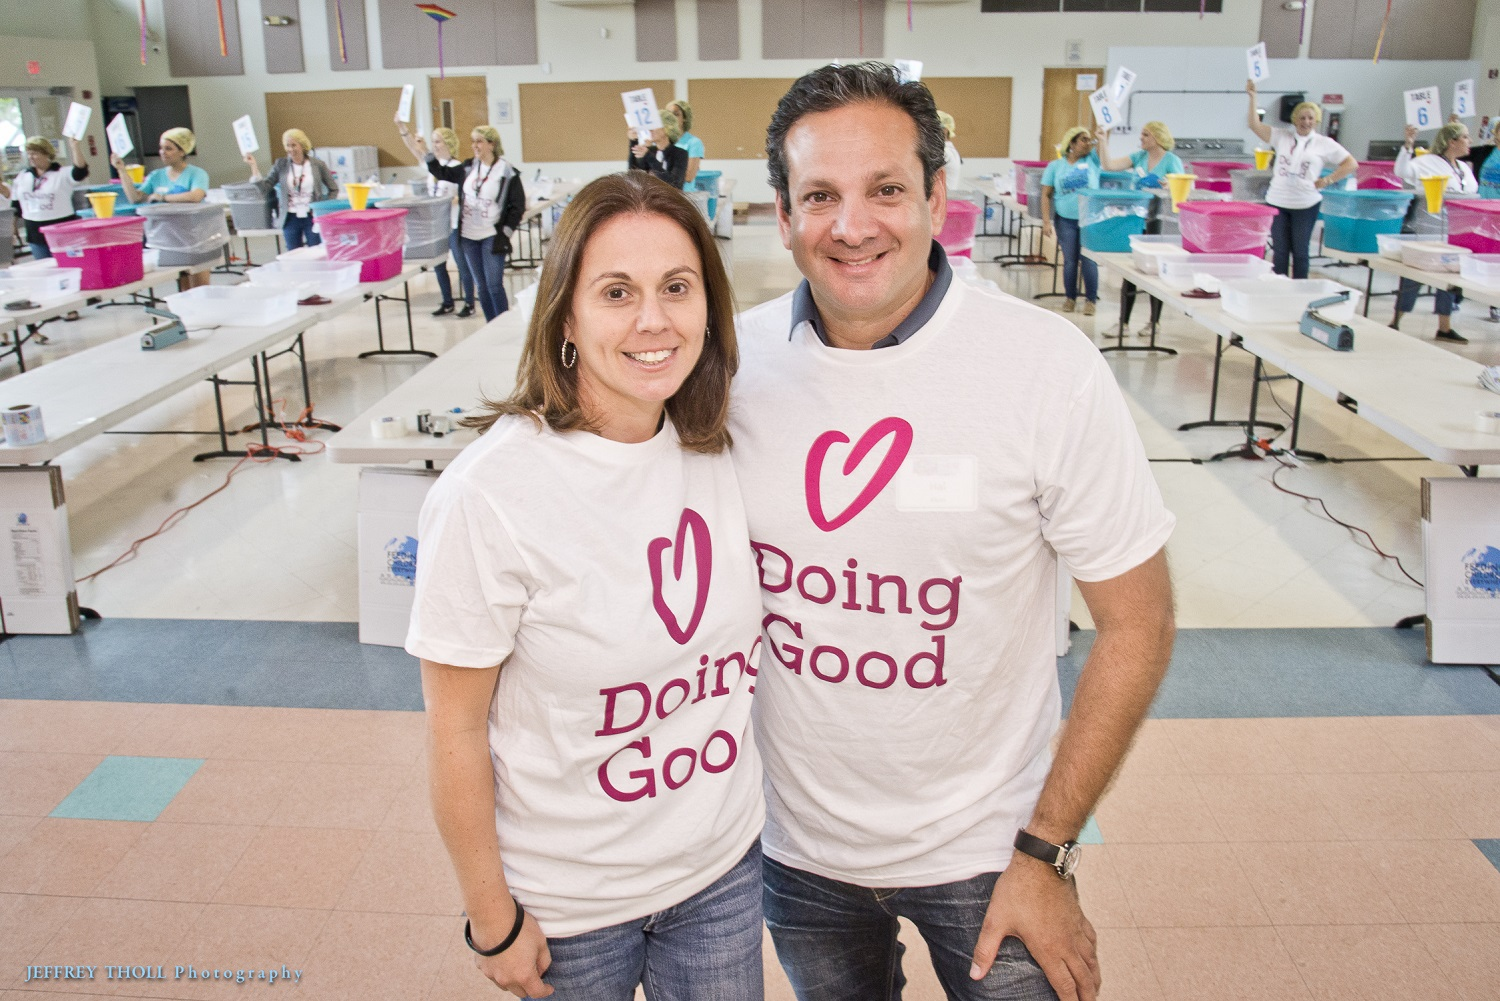 Volunteers from the Jewish Federation of south Palm Beach County smile wide while doing good.